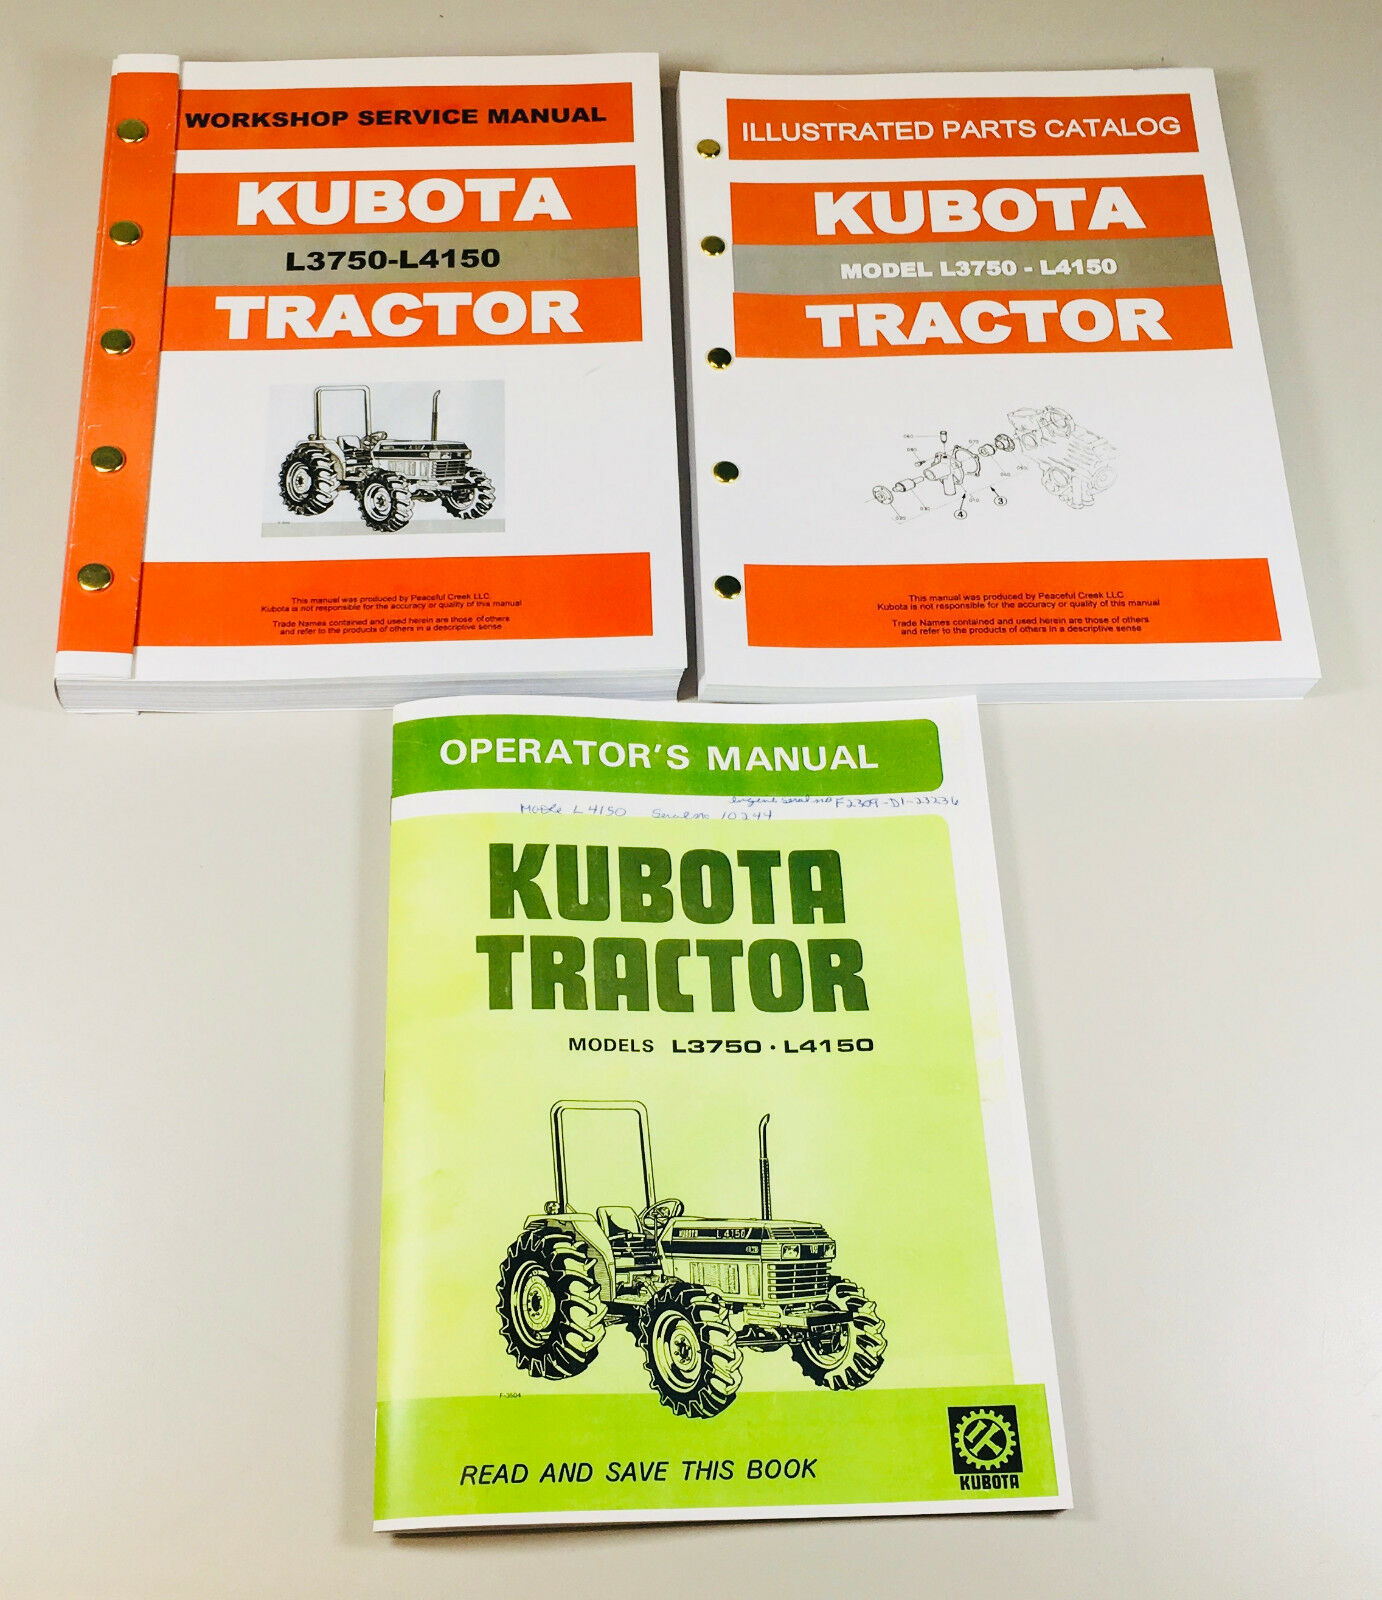 KUBOTA TRACTORS. MODELS: L3750 & L4150. Complete Service Repair/Overhaul/ Parts & Operators Manuals. 729 Pages